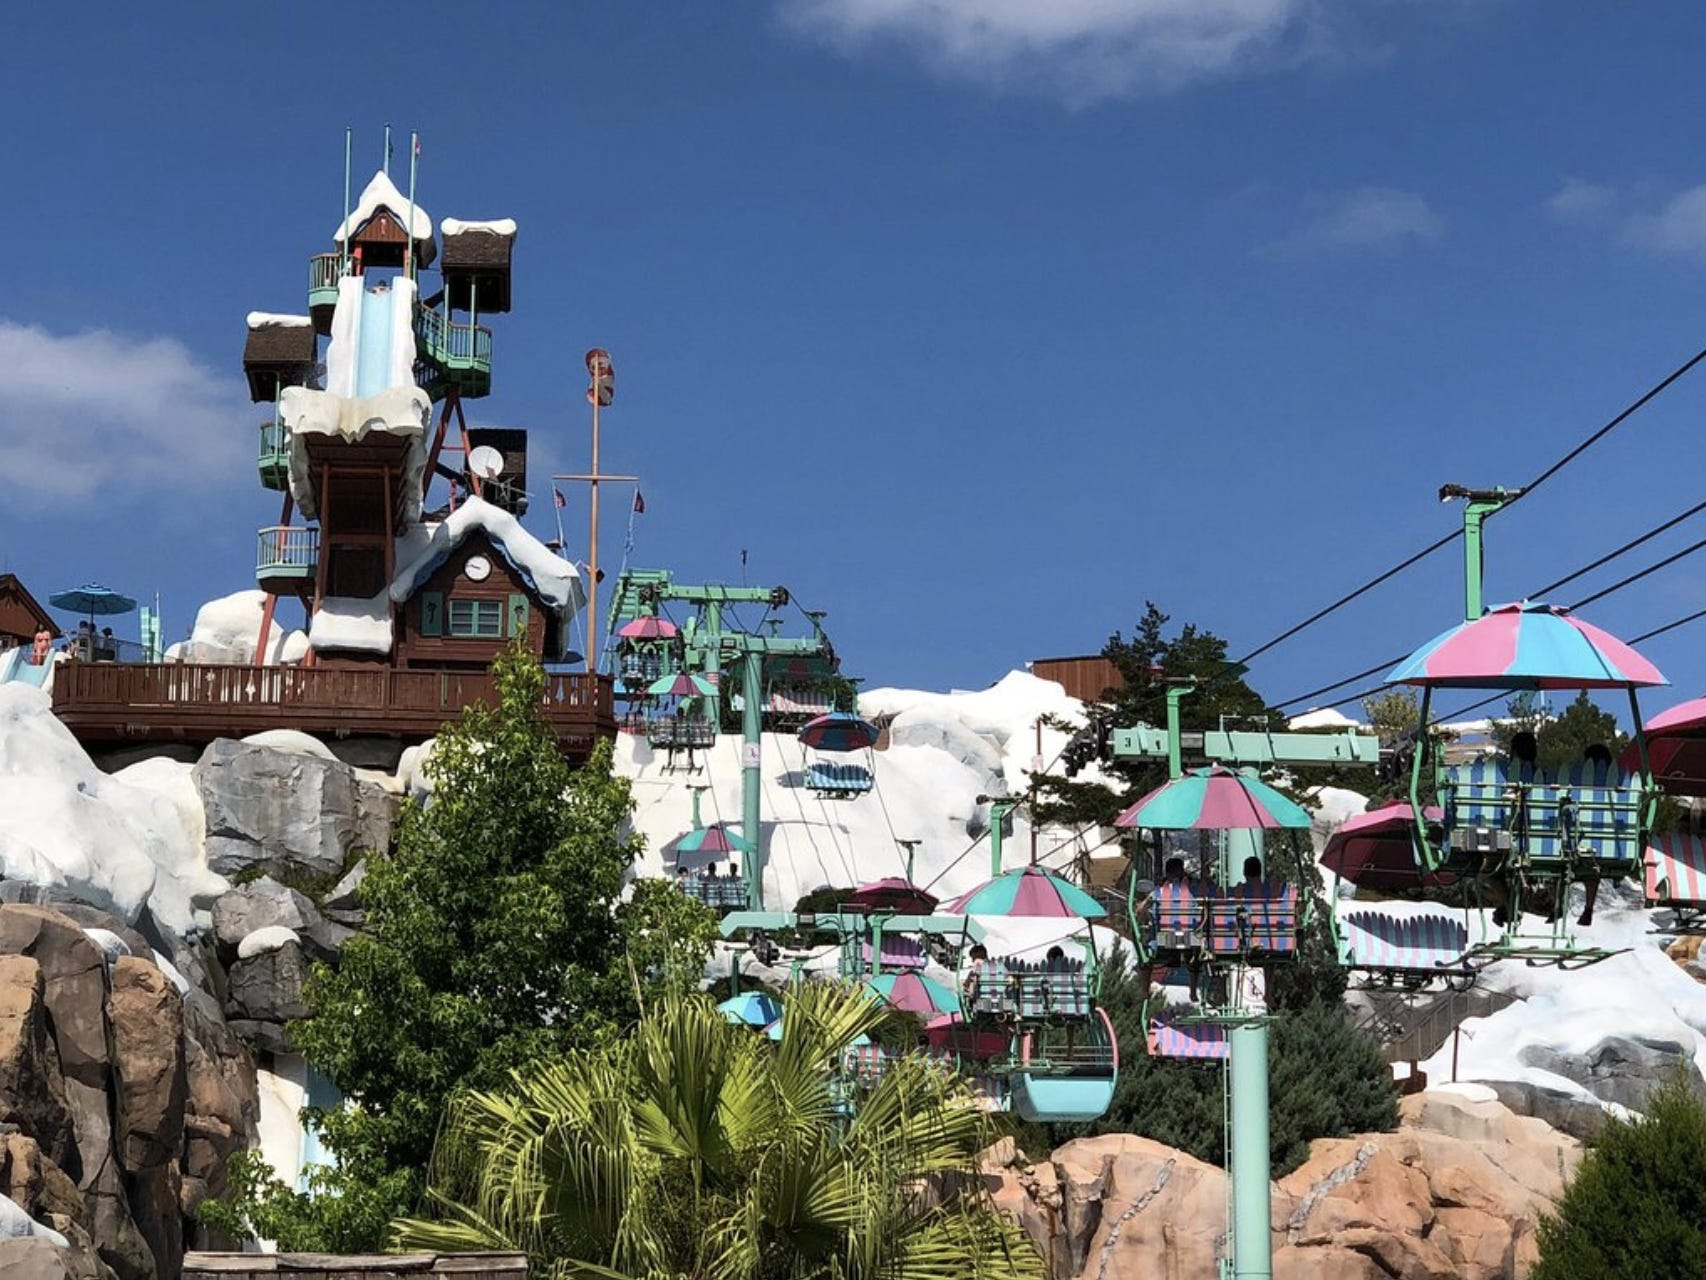 """Slide 7 of 17: Going along with Blizzard Beach's theme, the water park has a working chairlift with beach umbrella canopies that guests can ride up the """"mountain.""""The lift travels to the top of Mount Gushmore, where they can get in line for three of the park's top-tier attractions."""